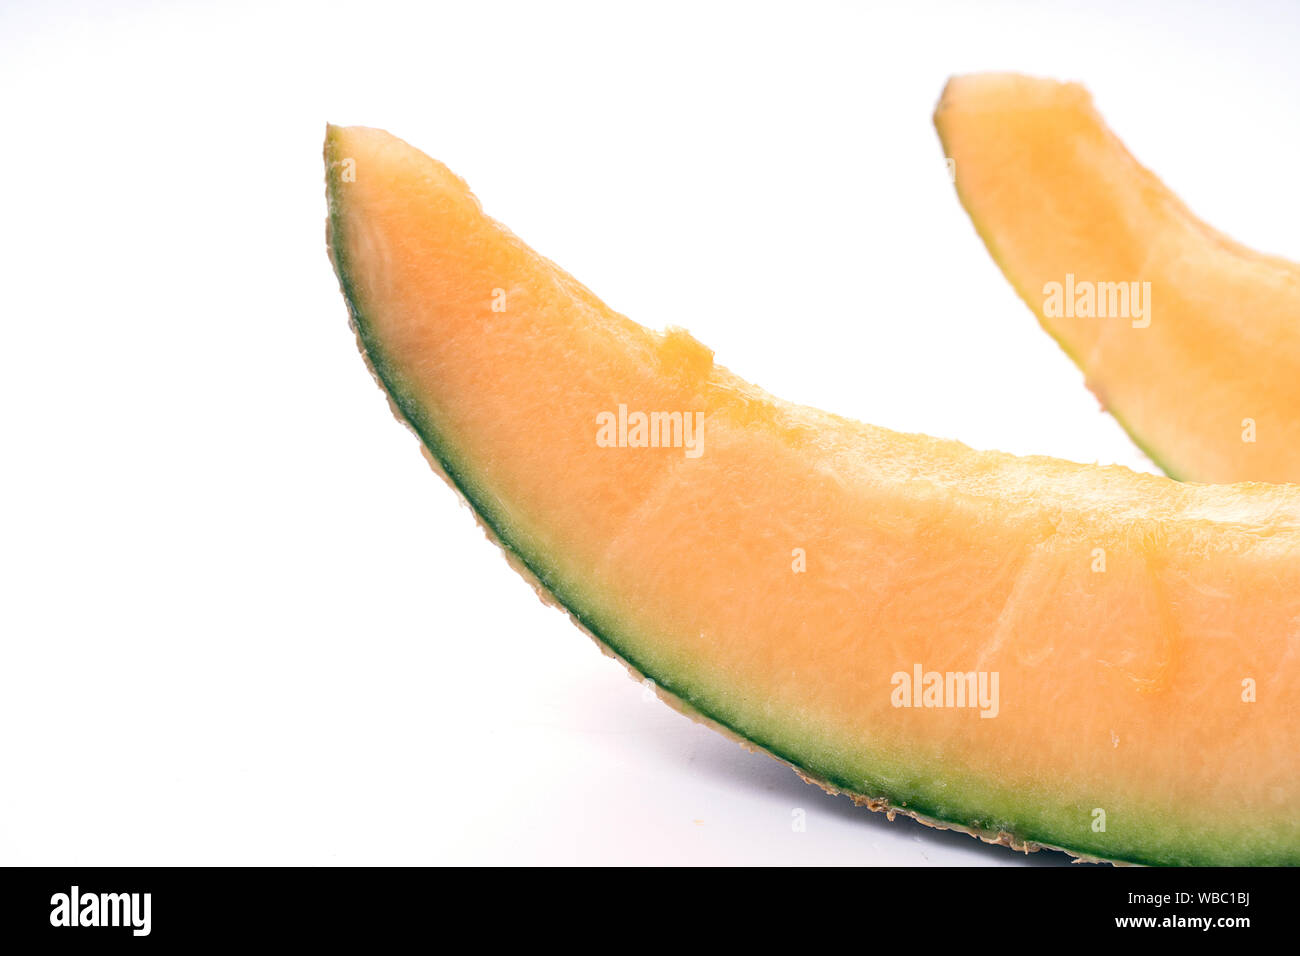 Cut Natural Melon A Healthy Product Full Of Vitamins For Advertising Vegan Food And Lifestyle Stock Photo Alamy Cantaloupes are packed with vitamins a and c, and since they have high water content, they like other melons, cantaloupe has a high water content (about 90 percent), but being packed with water. alamy